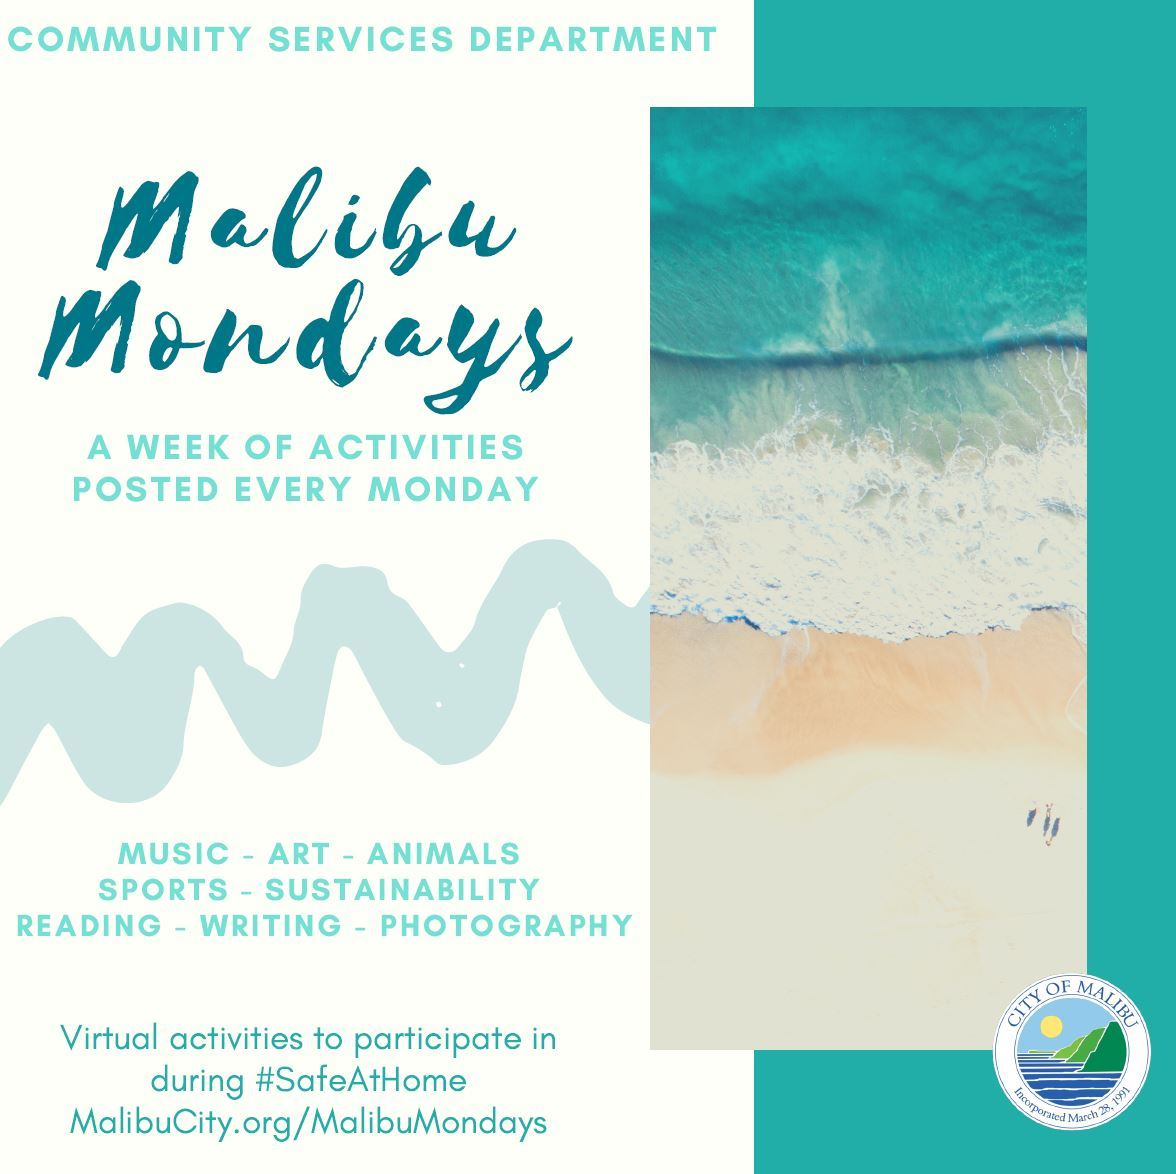 Malibu Mondays Website JPEG Image